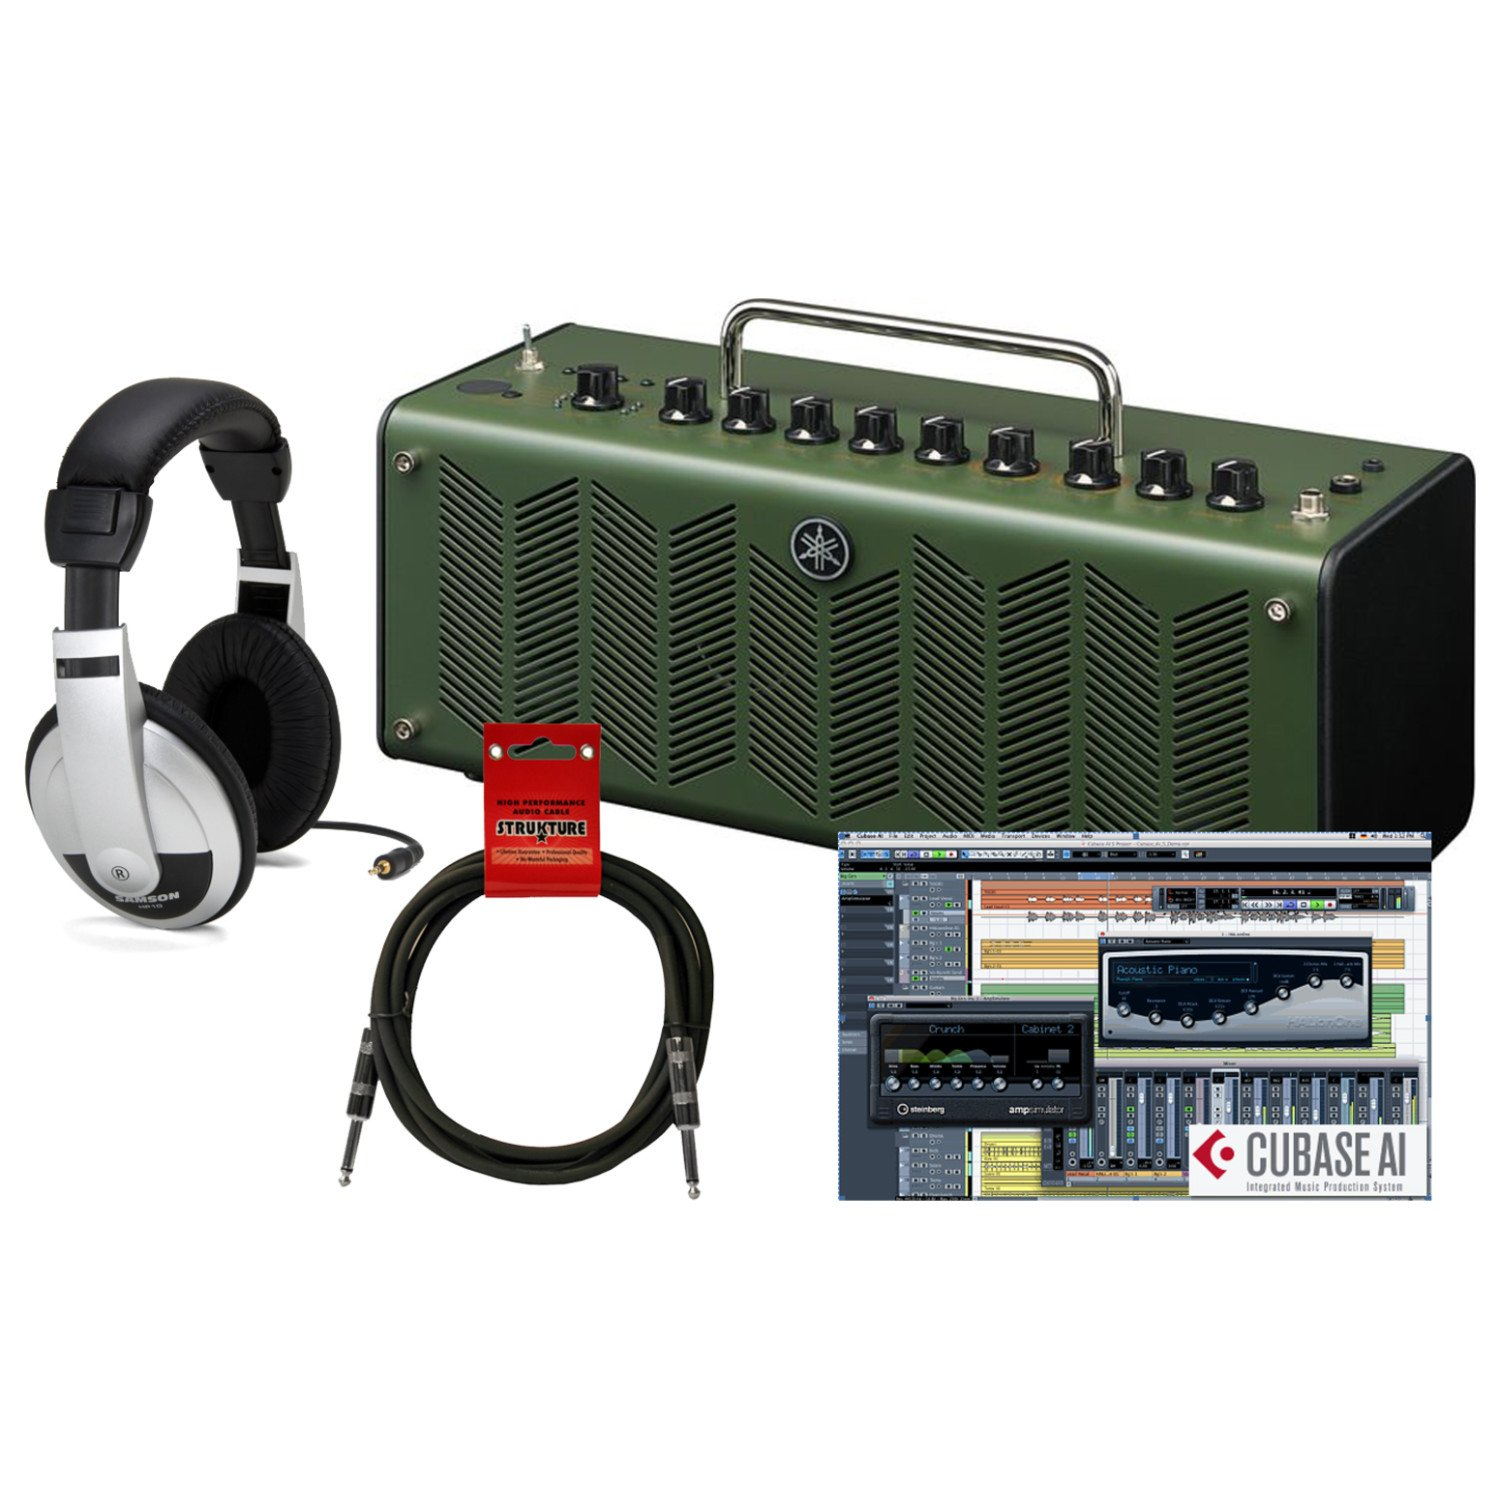 Yamaha THR10X Hi Gain Modeling Desktop Amplifier in Camouflage Green with Open-Ear Headphones and Instrument Cable by Yamaha